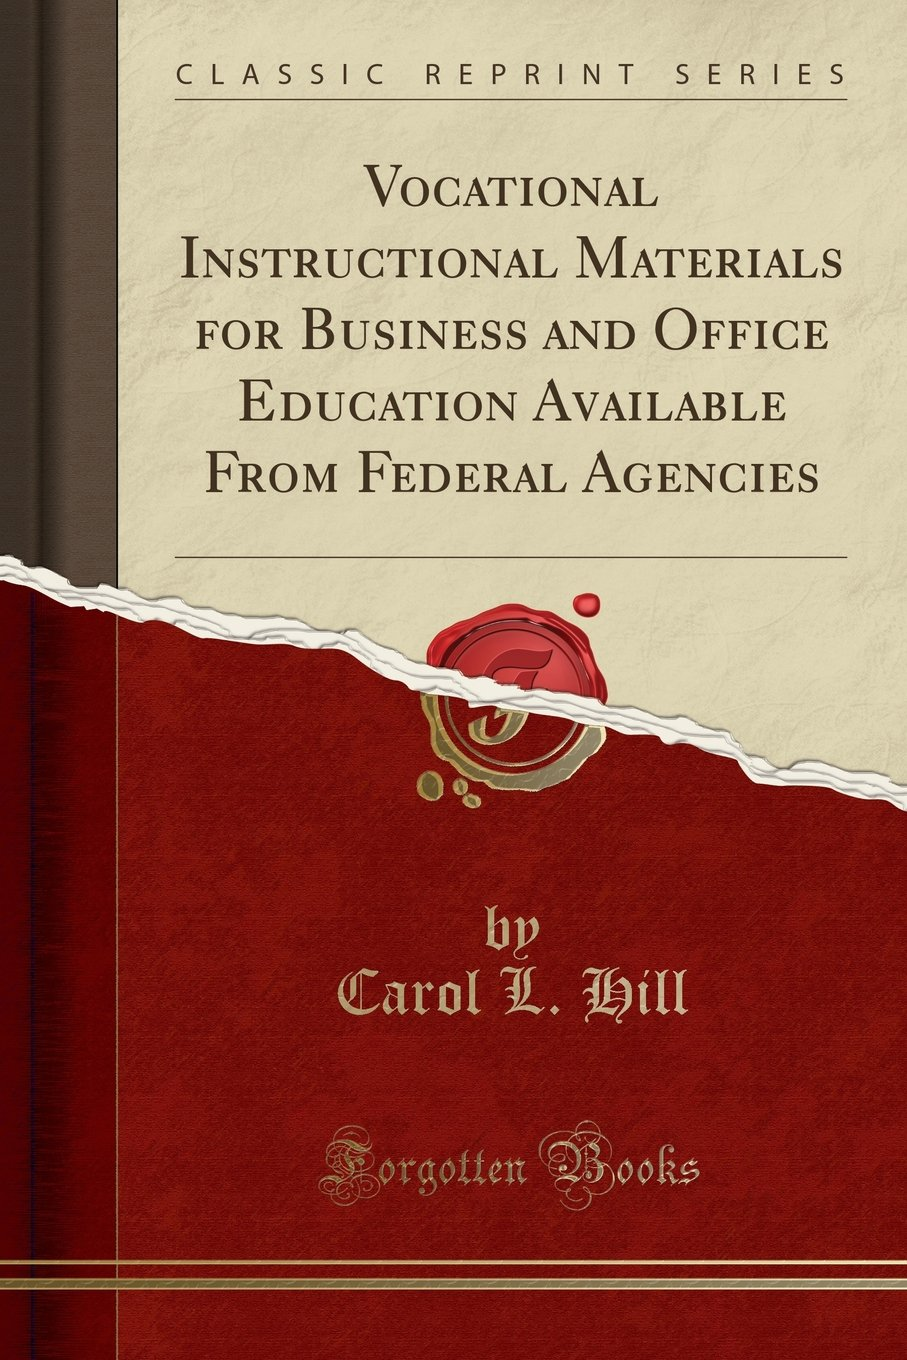 Vocational Instructional Materials For Business And Office Education